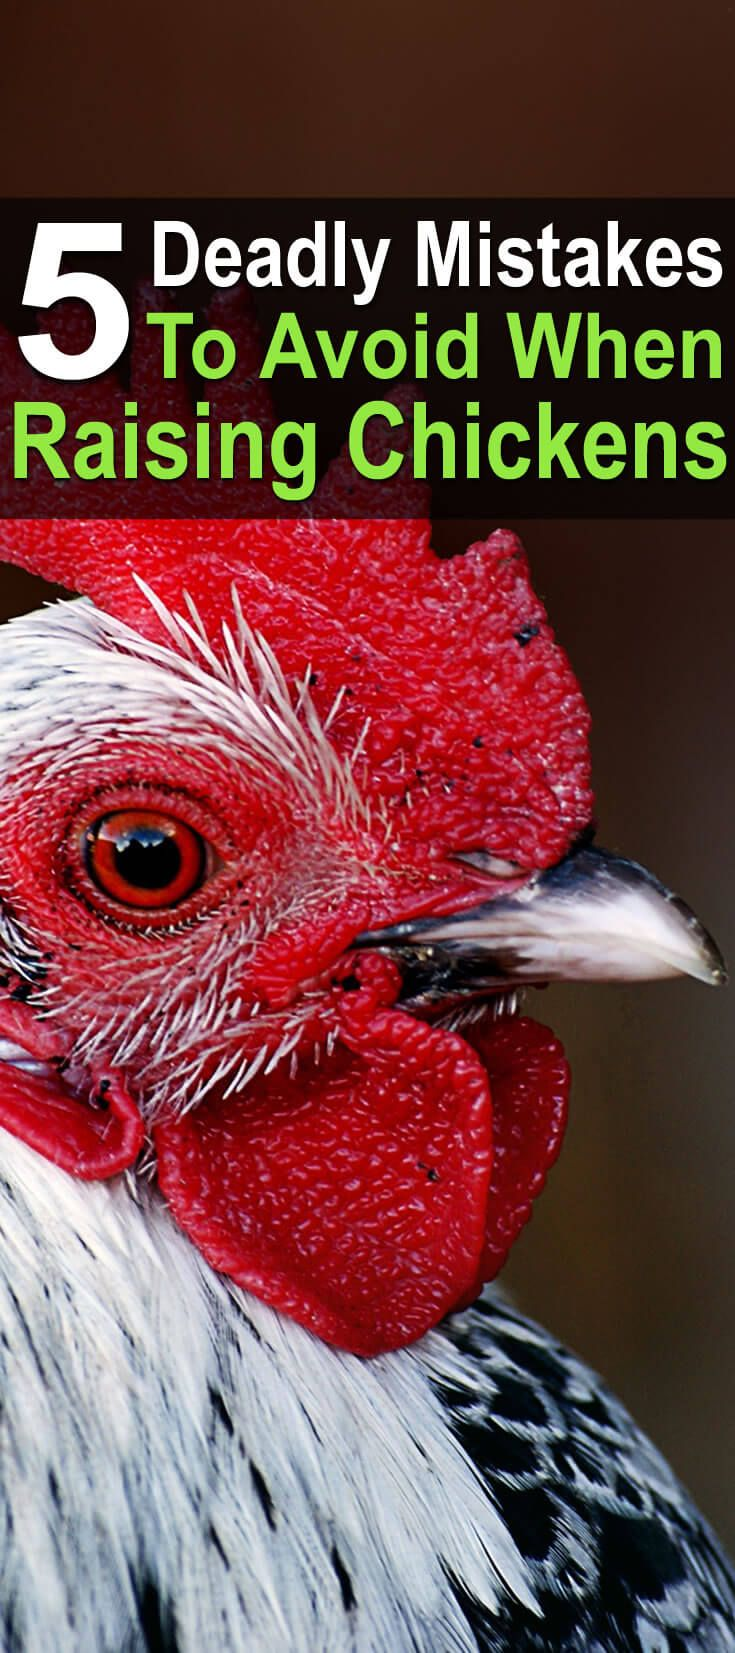 In this episode of Becky's Homestead, she talks about mistakes to avoid when raising chickens. Neglecting these could lead to unhealthy or dead chickens.